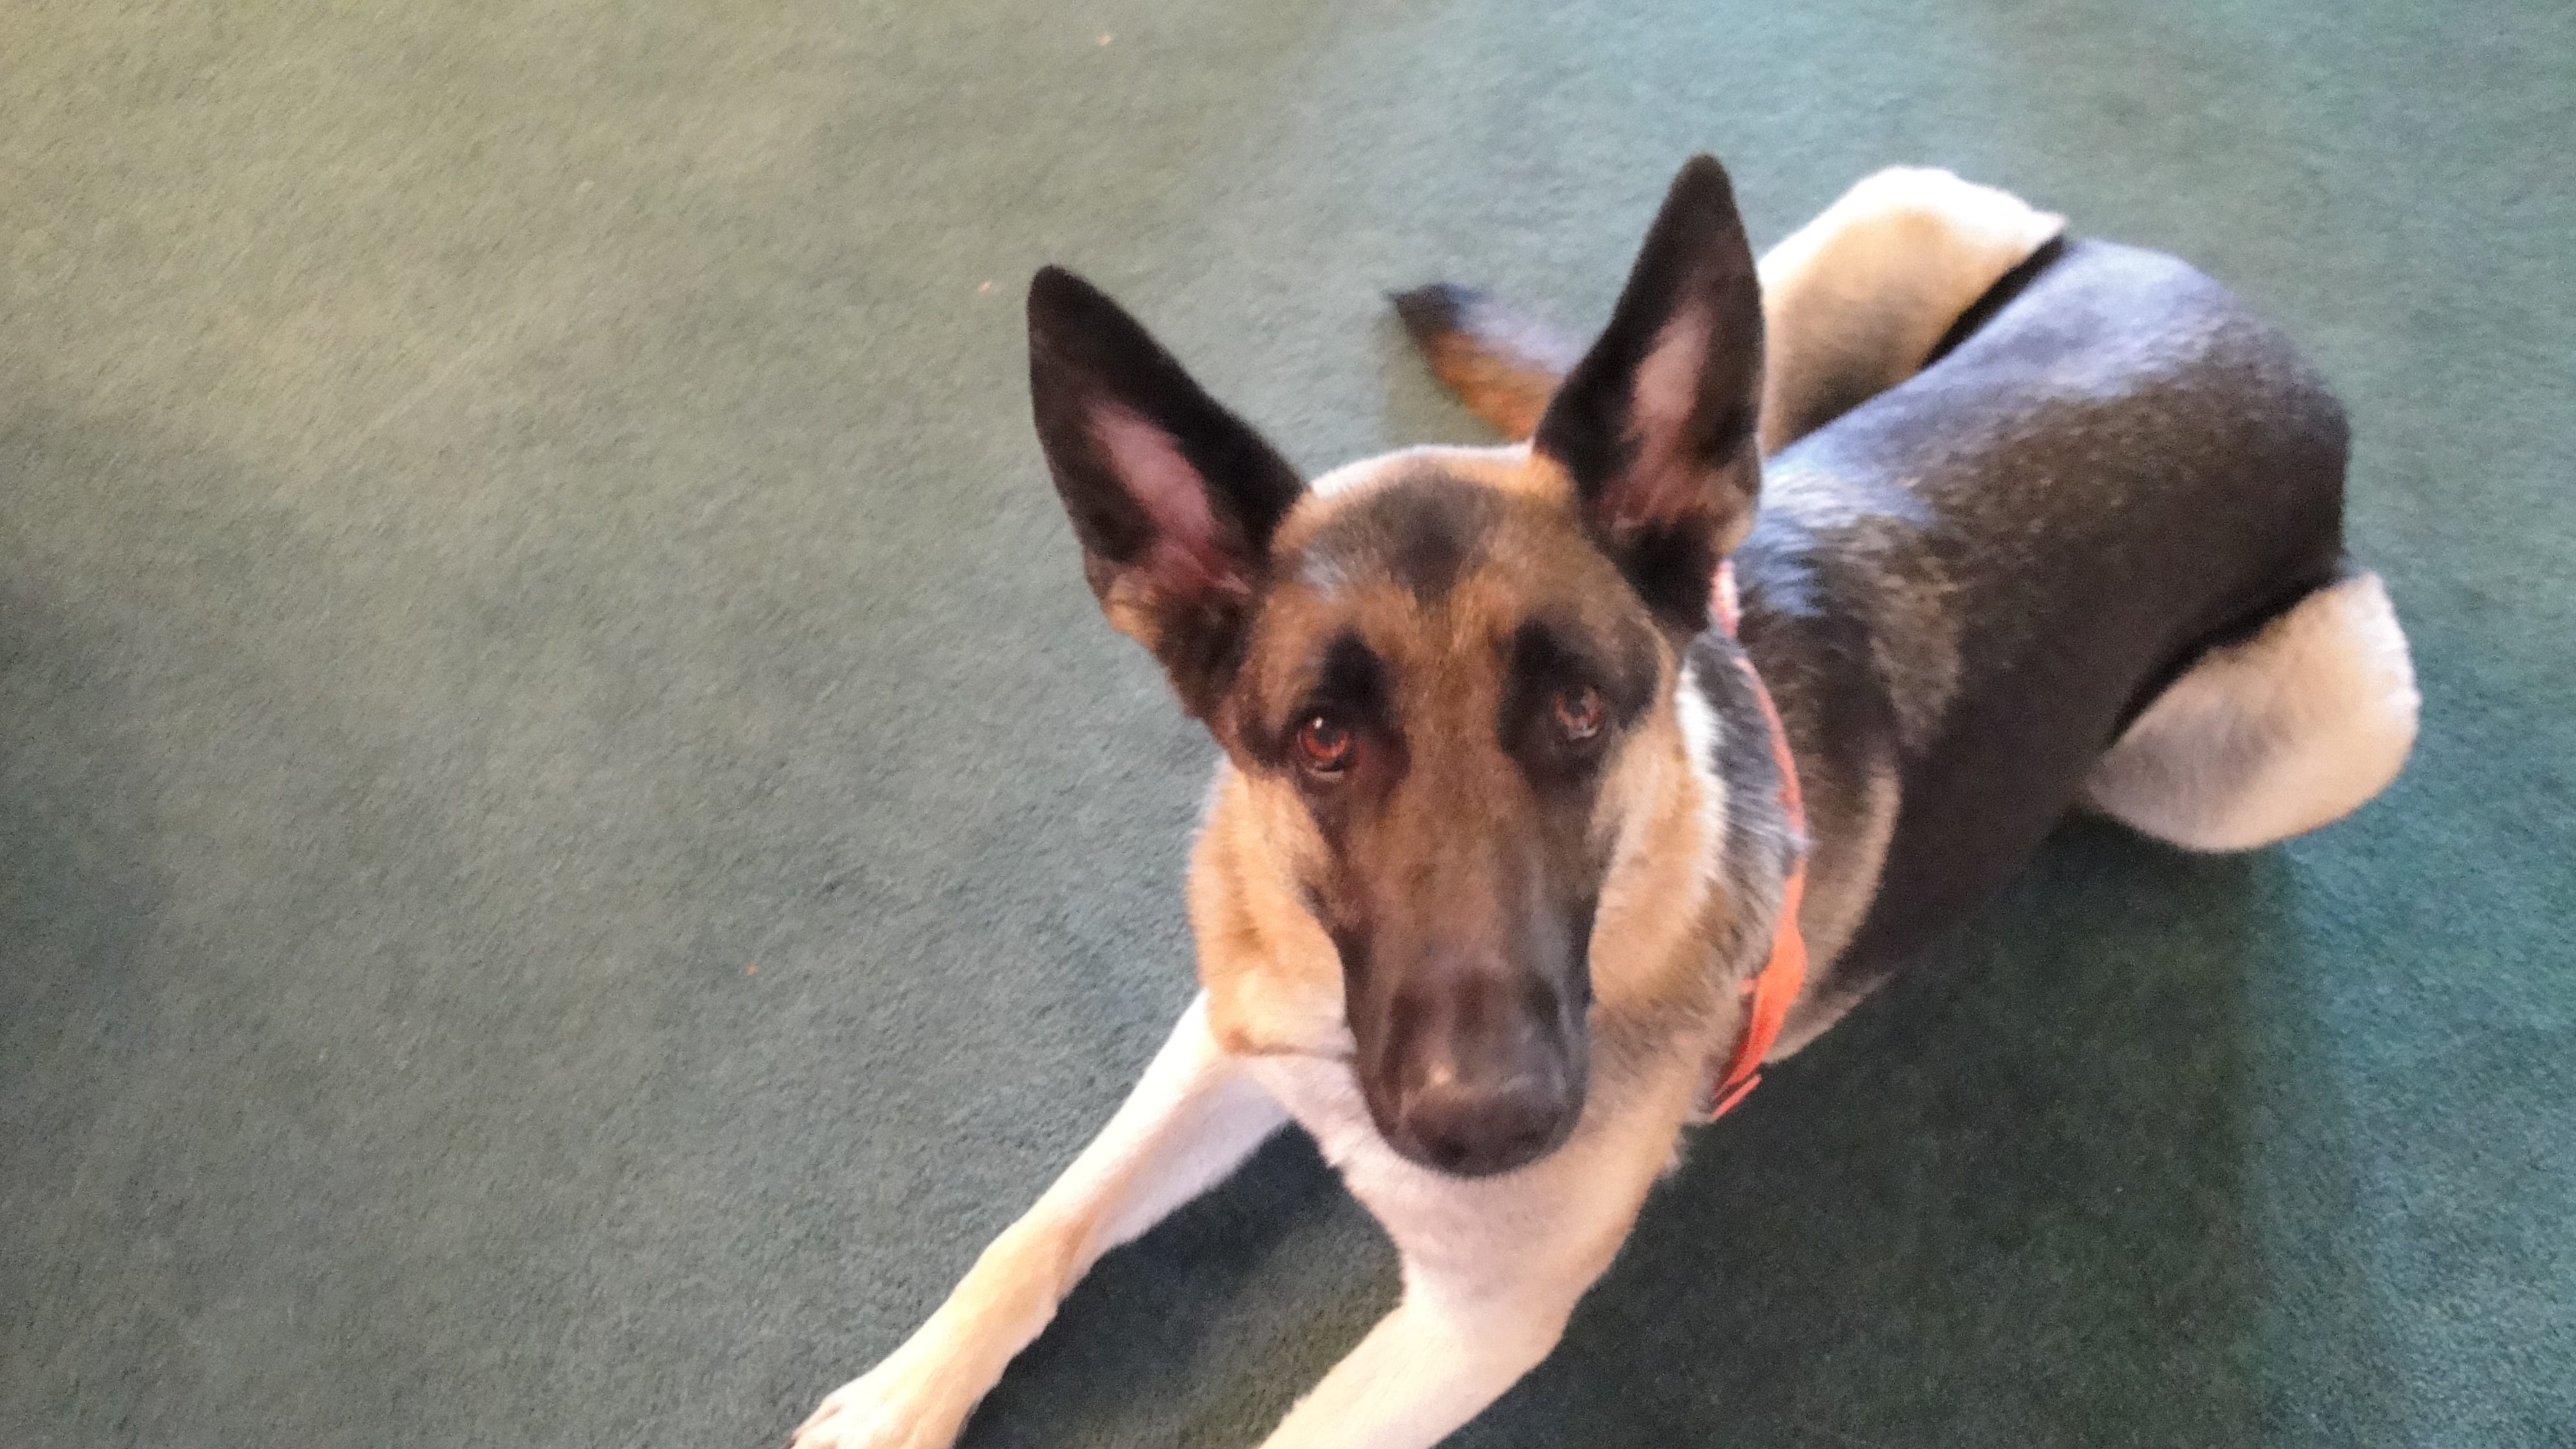 Jonzie, a 4-year-old German shepherd, was electrocuted at a Washington City park after he jumped into a pool of water July 13, 208.